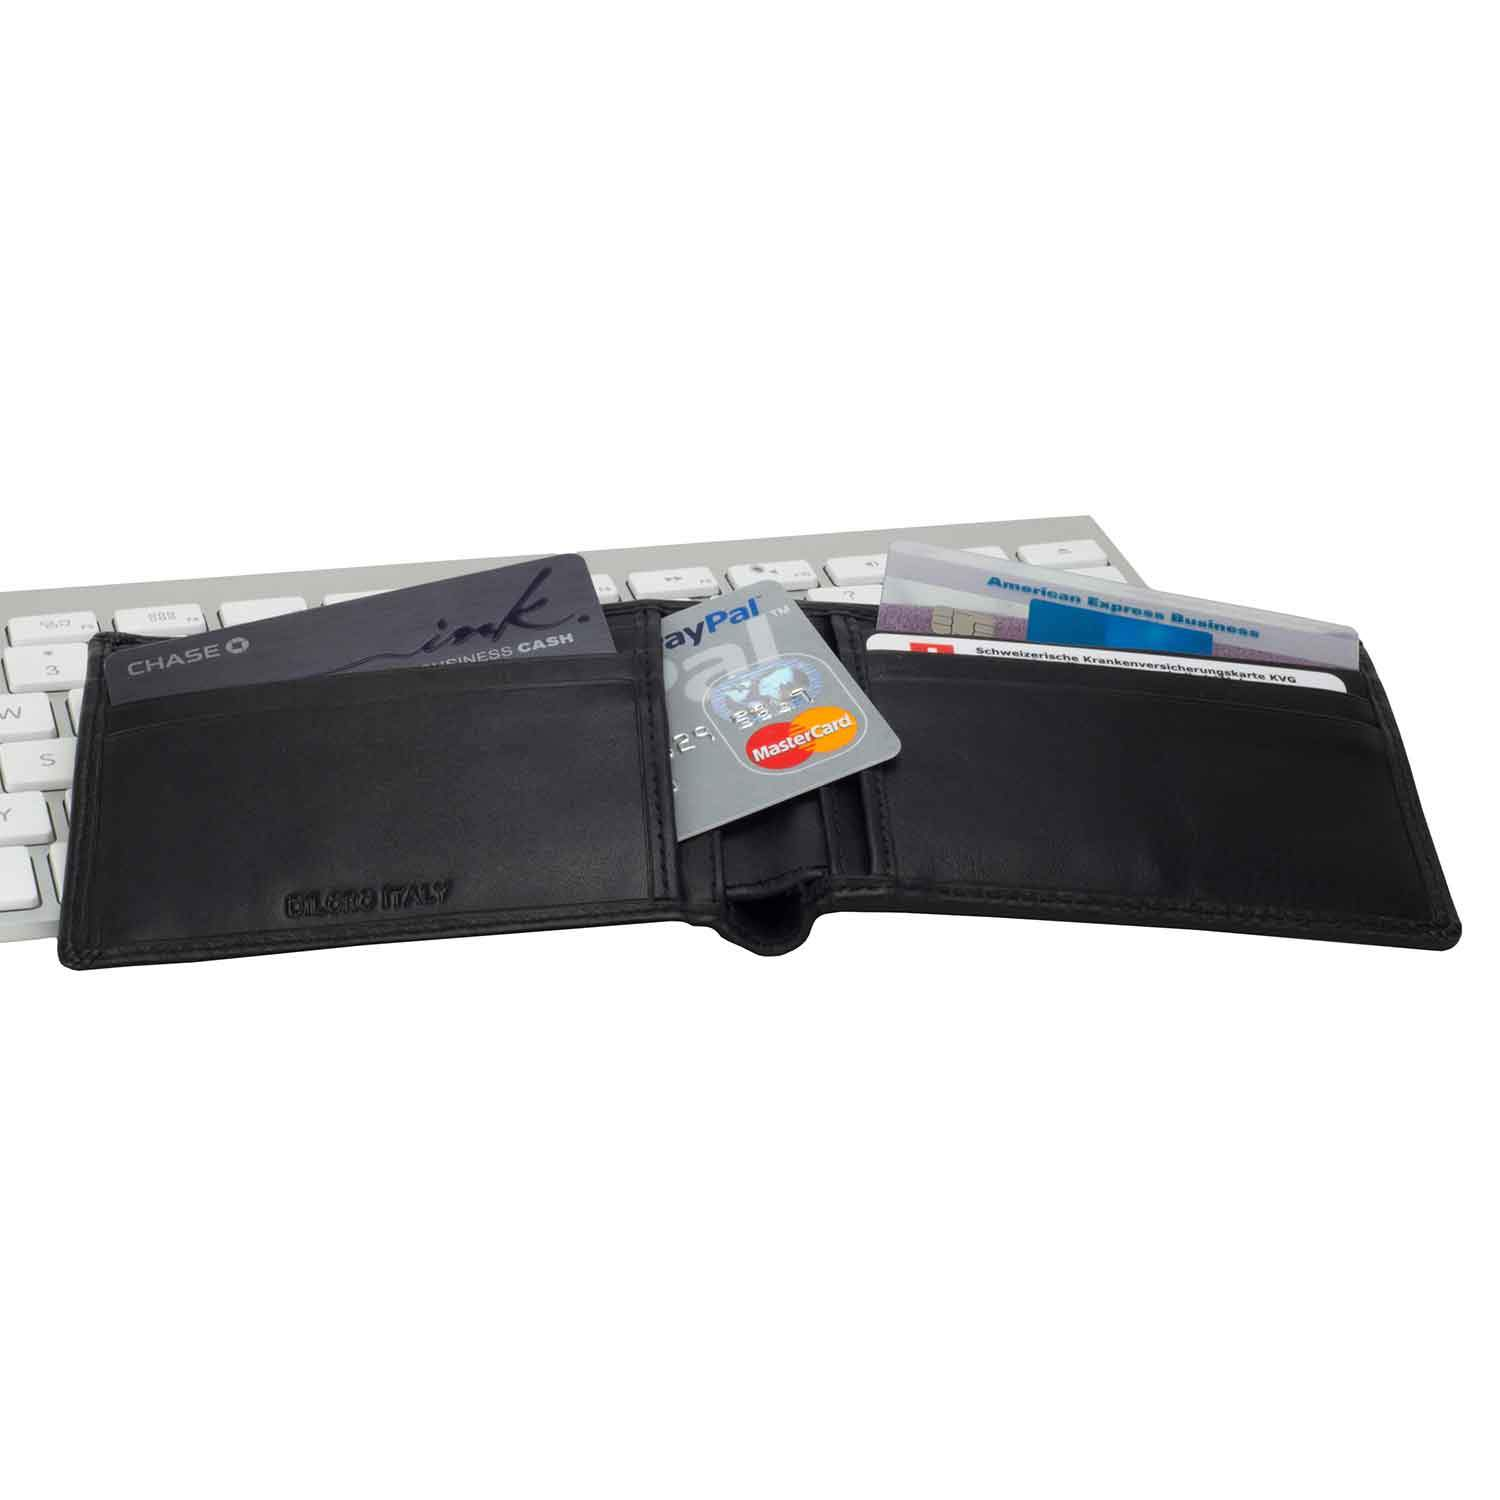 DiLoro Slim Bifold Leather Wallet with Back Slip Pocket and RFID Protection - open inside view open with cards (not included)